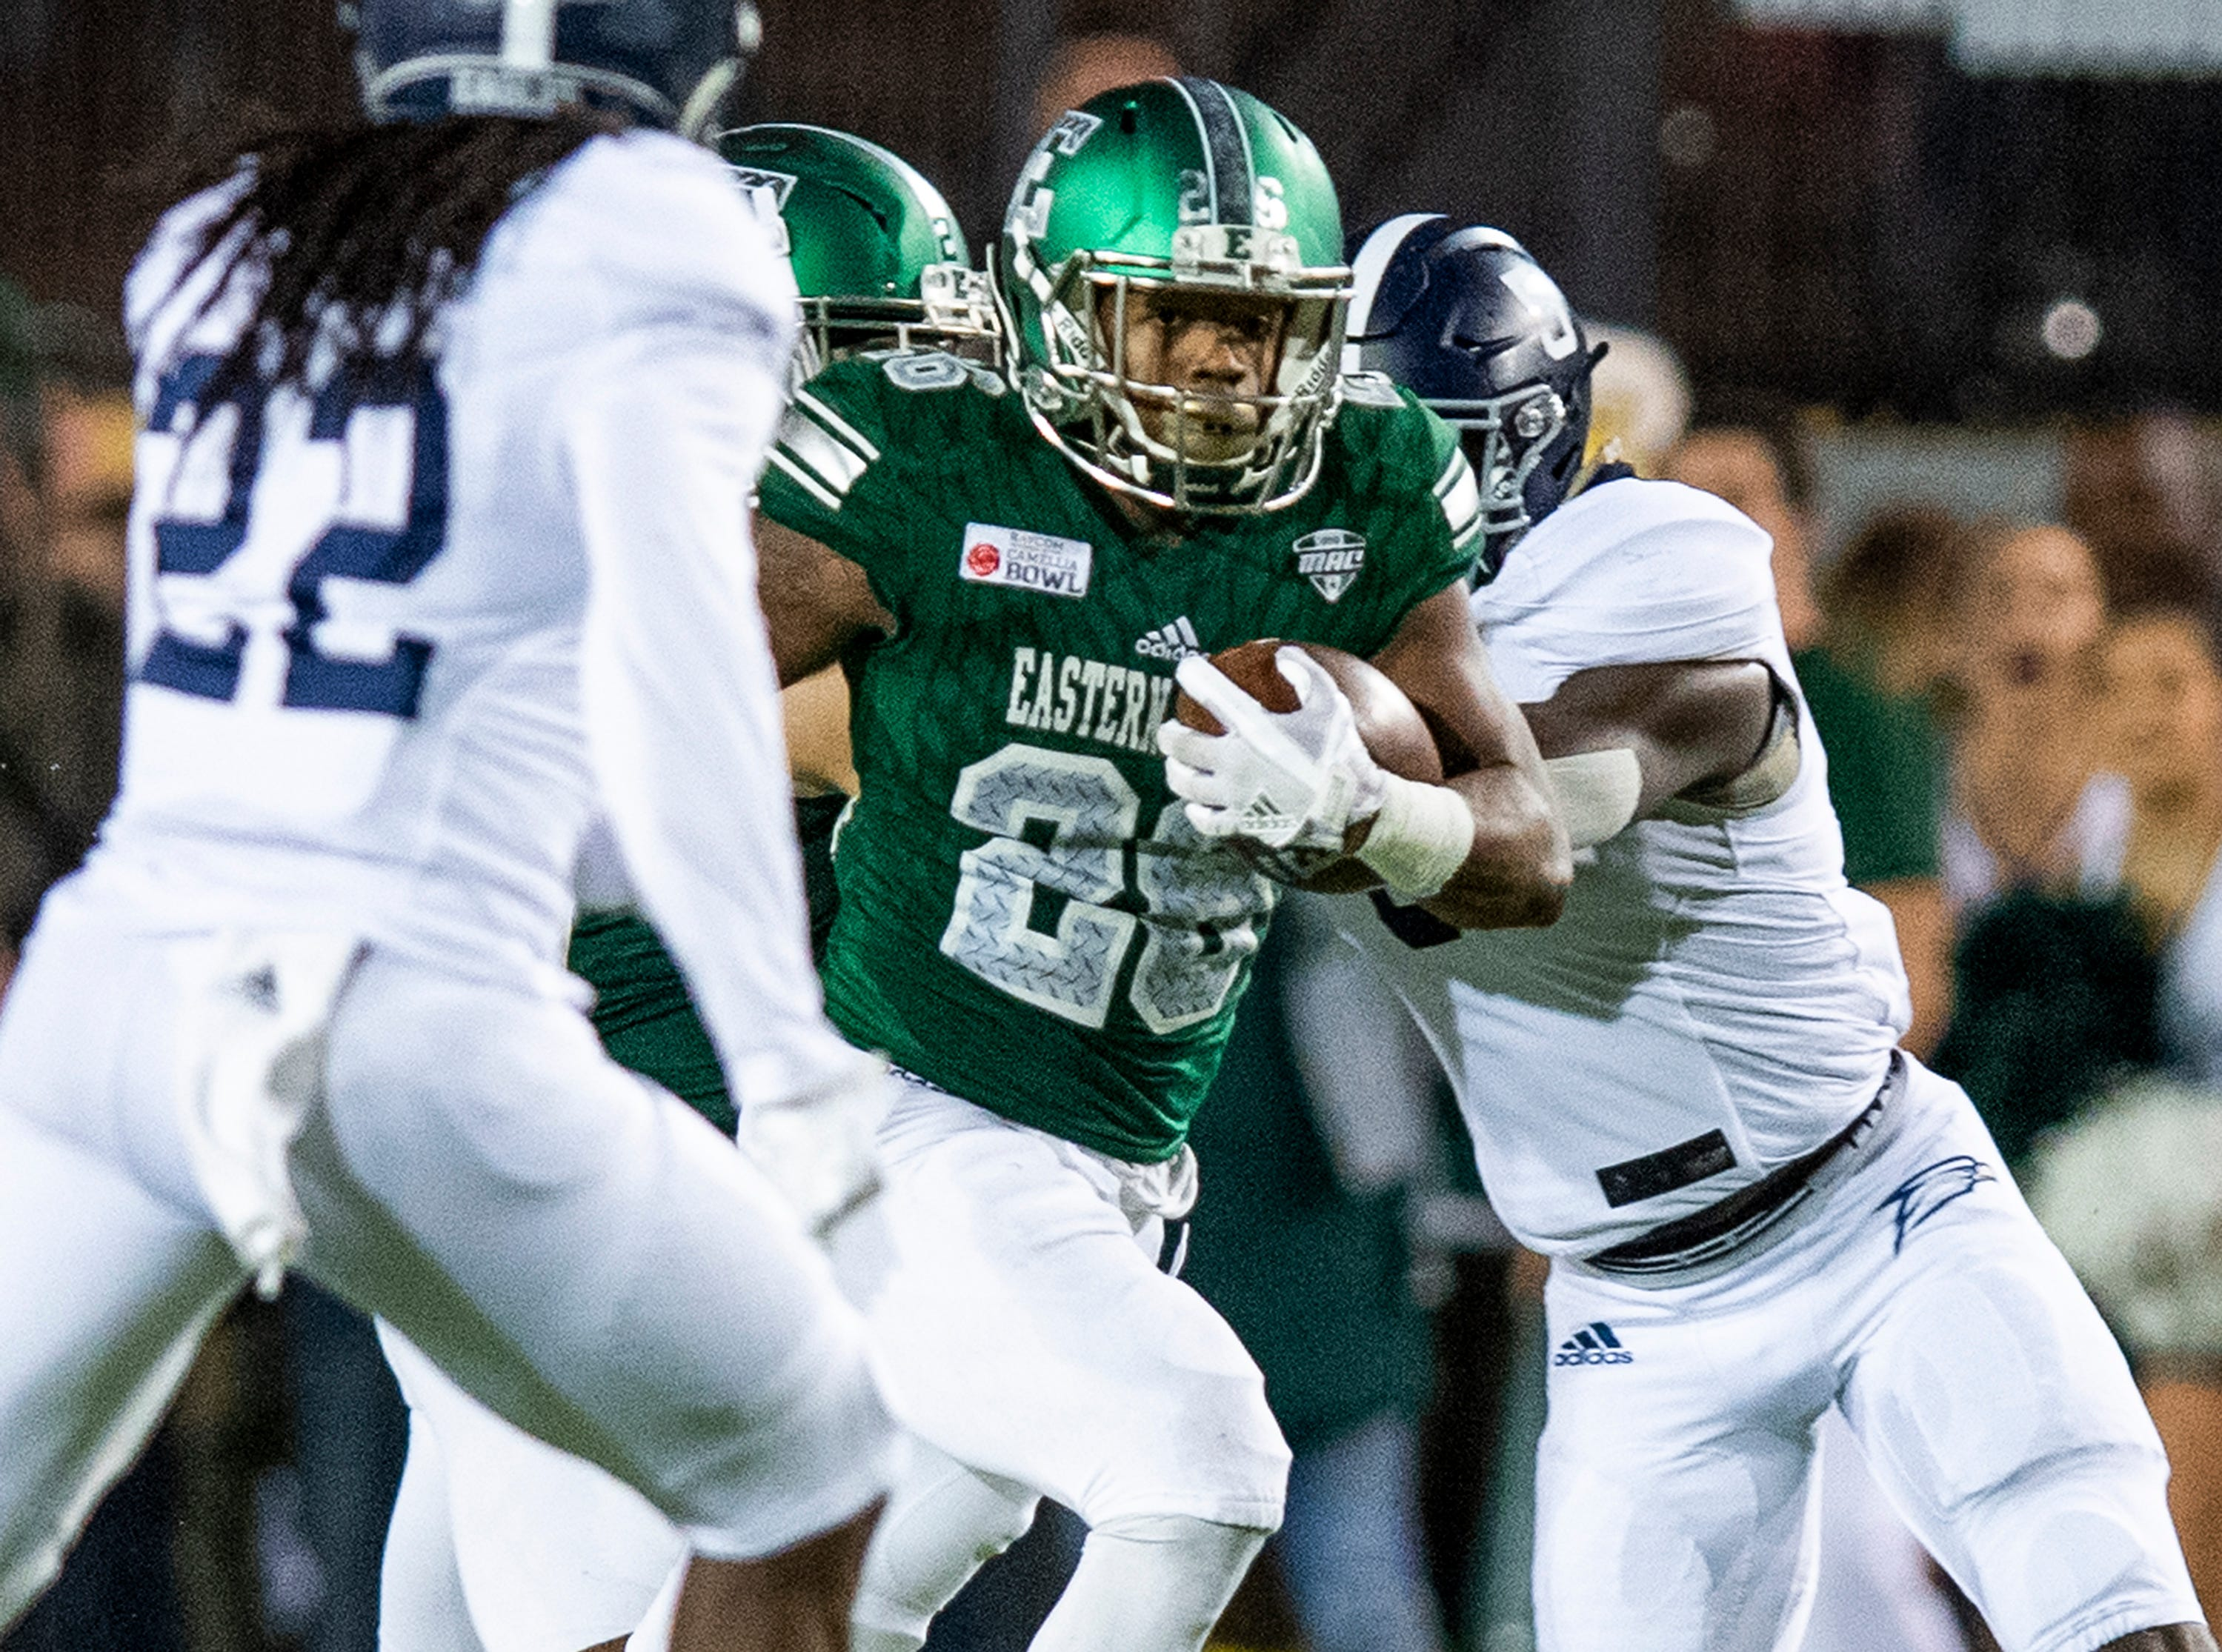 Eastern Michigan running back Willie Parker (26) carries the ball against Georgia Southern during first half action in the Raycom Media  Camellia Bowl held at Cramton Bowl in Montgomery, Ala., on Saturday December 15, 2018.